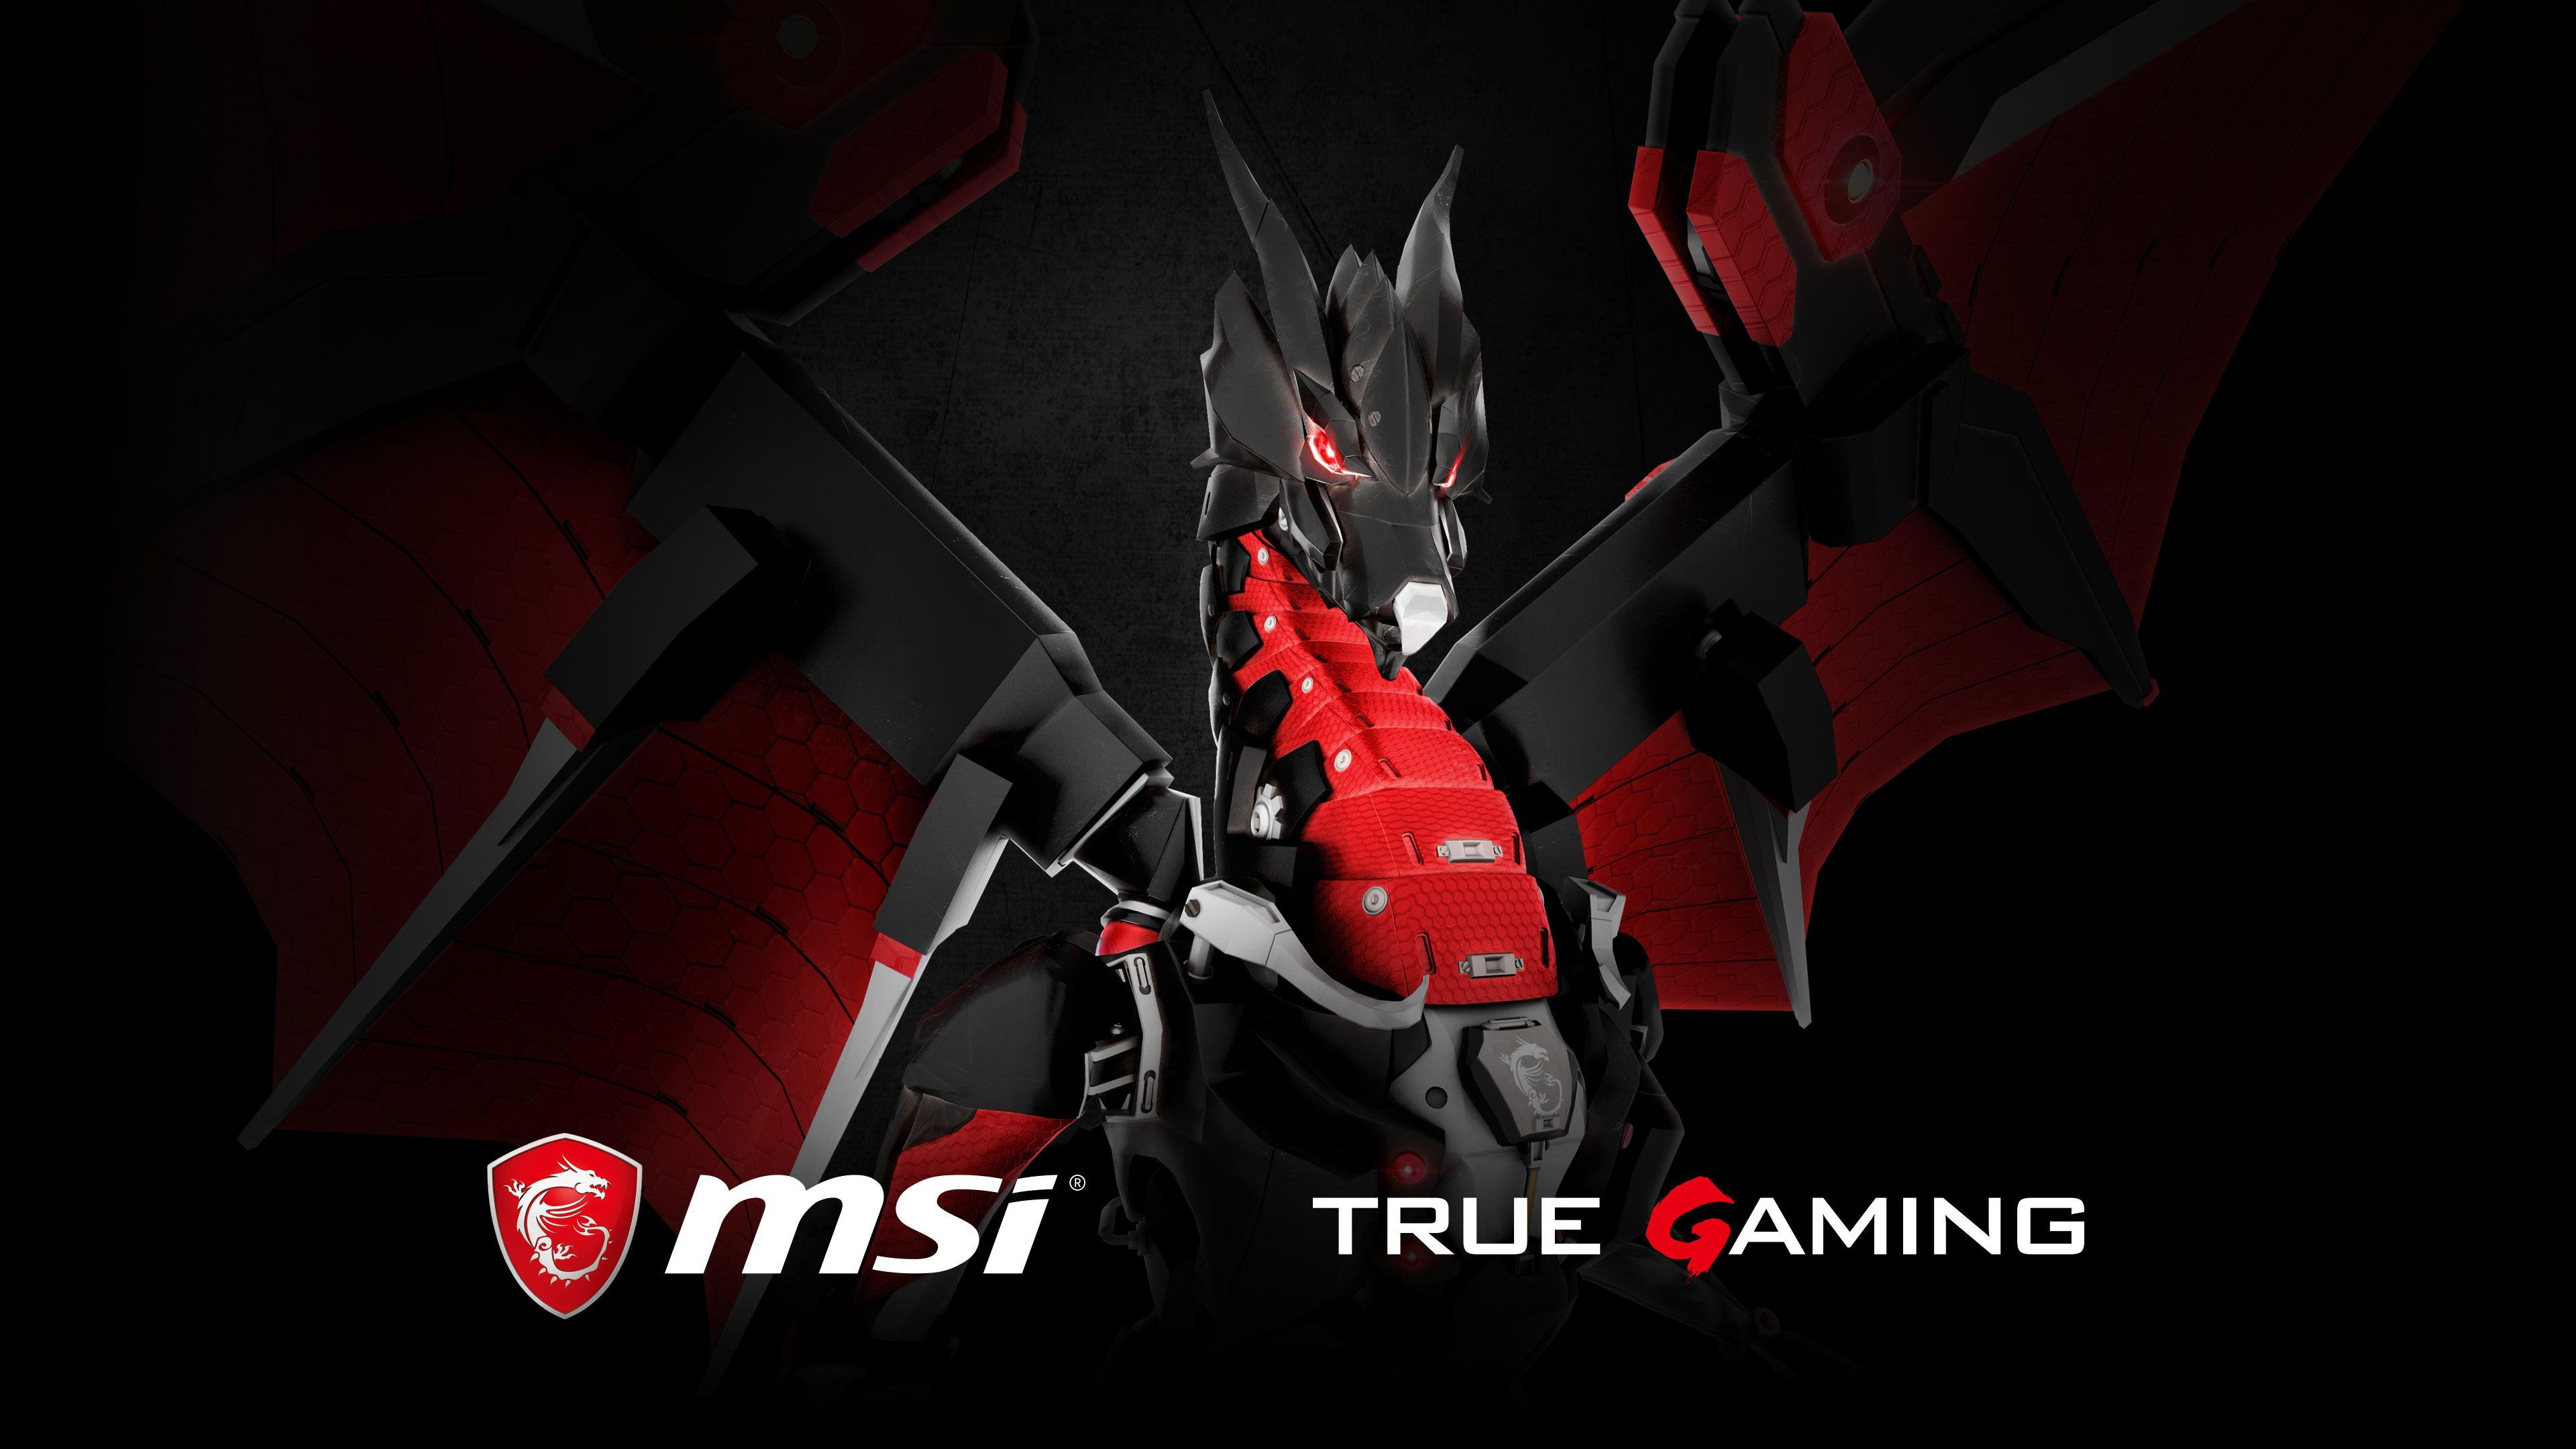 3840x2160 Wallpaper | MSI Global